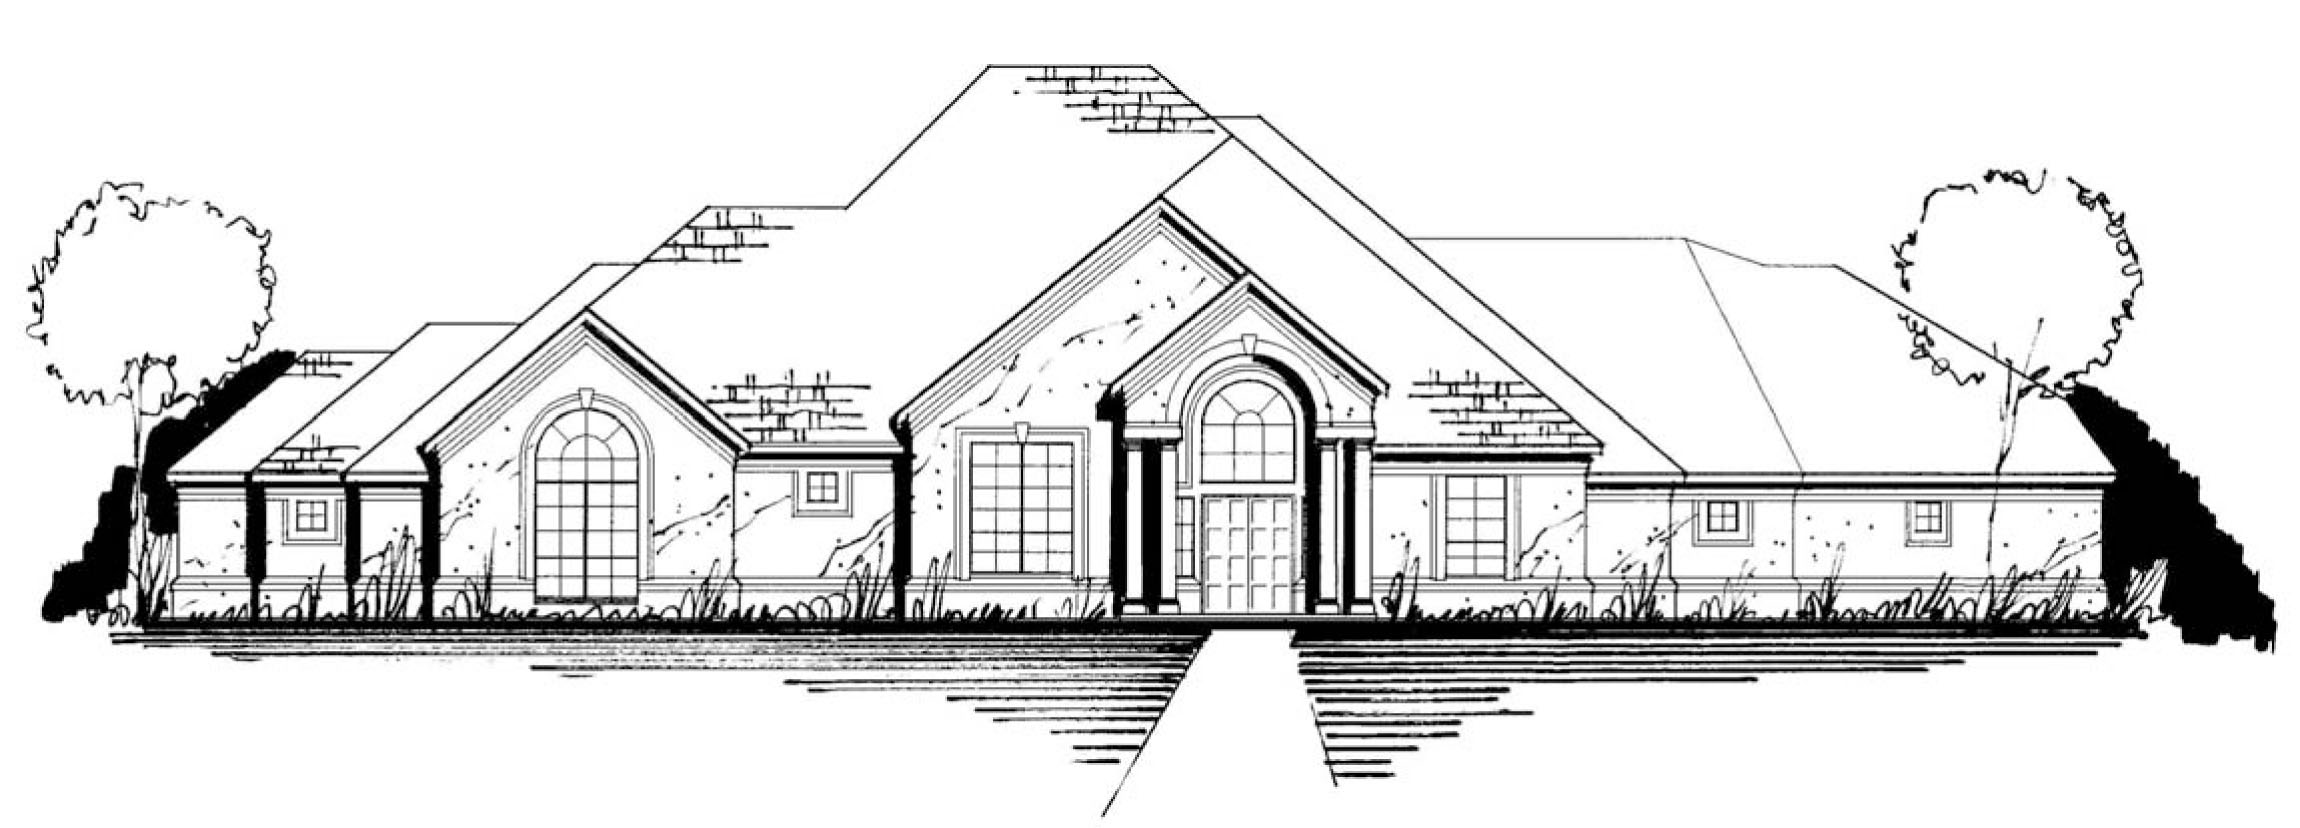 Golden Pond Texas Best House Plans By Creative Architects